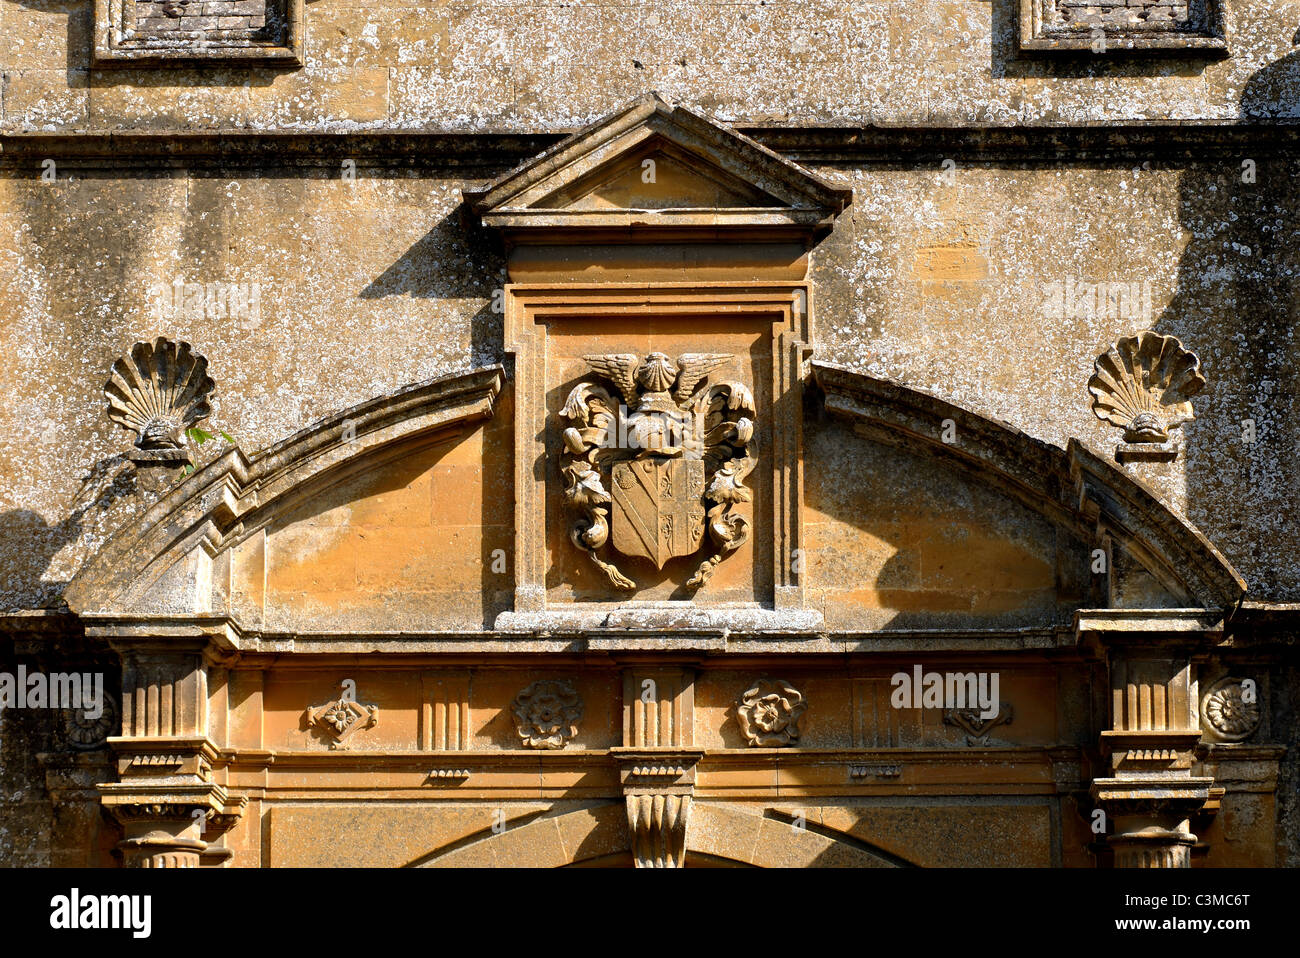 Detail of Stanway House gateway, Gloucestershire, England, UK Stock Photo